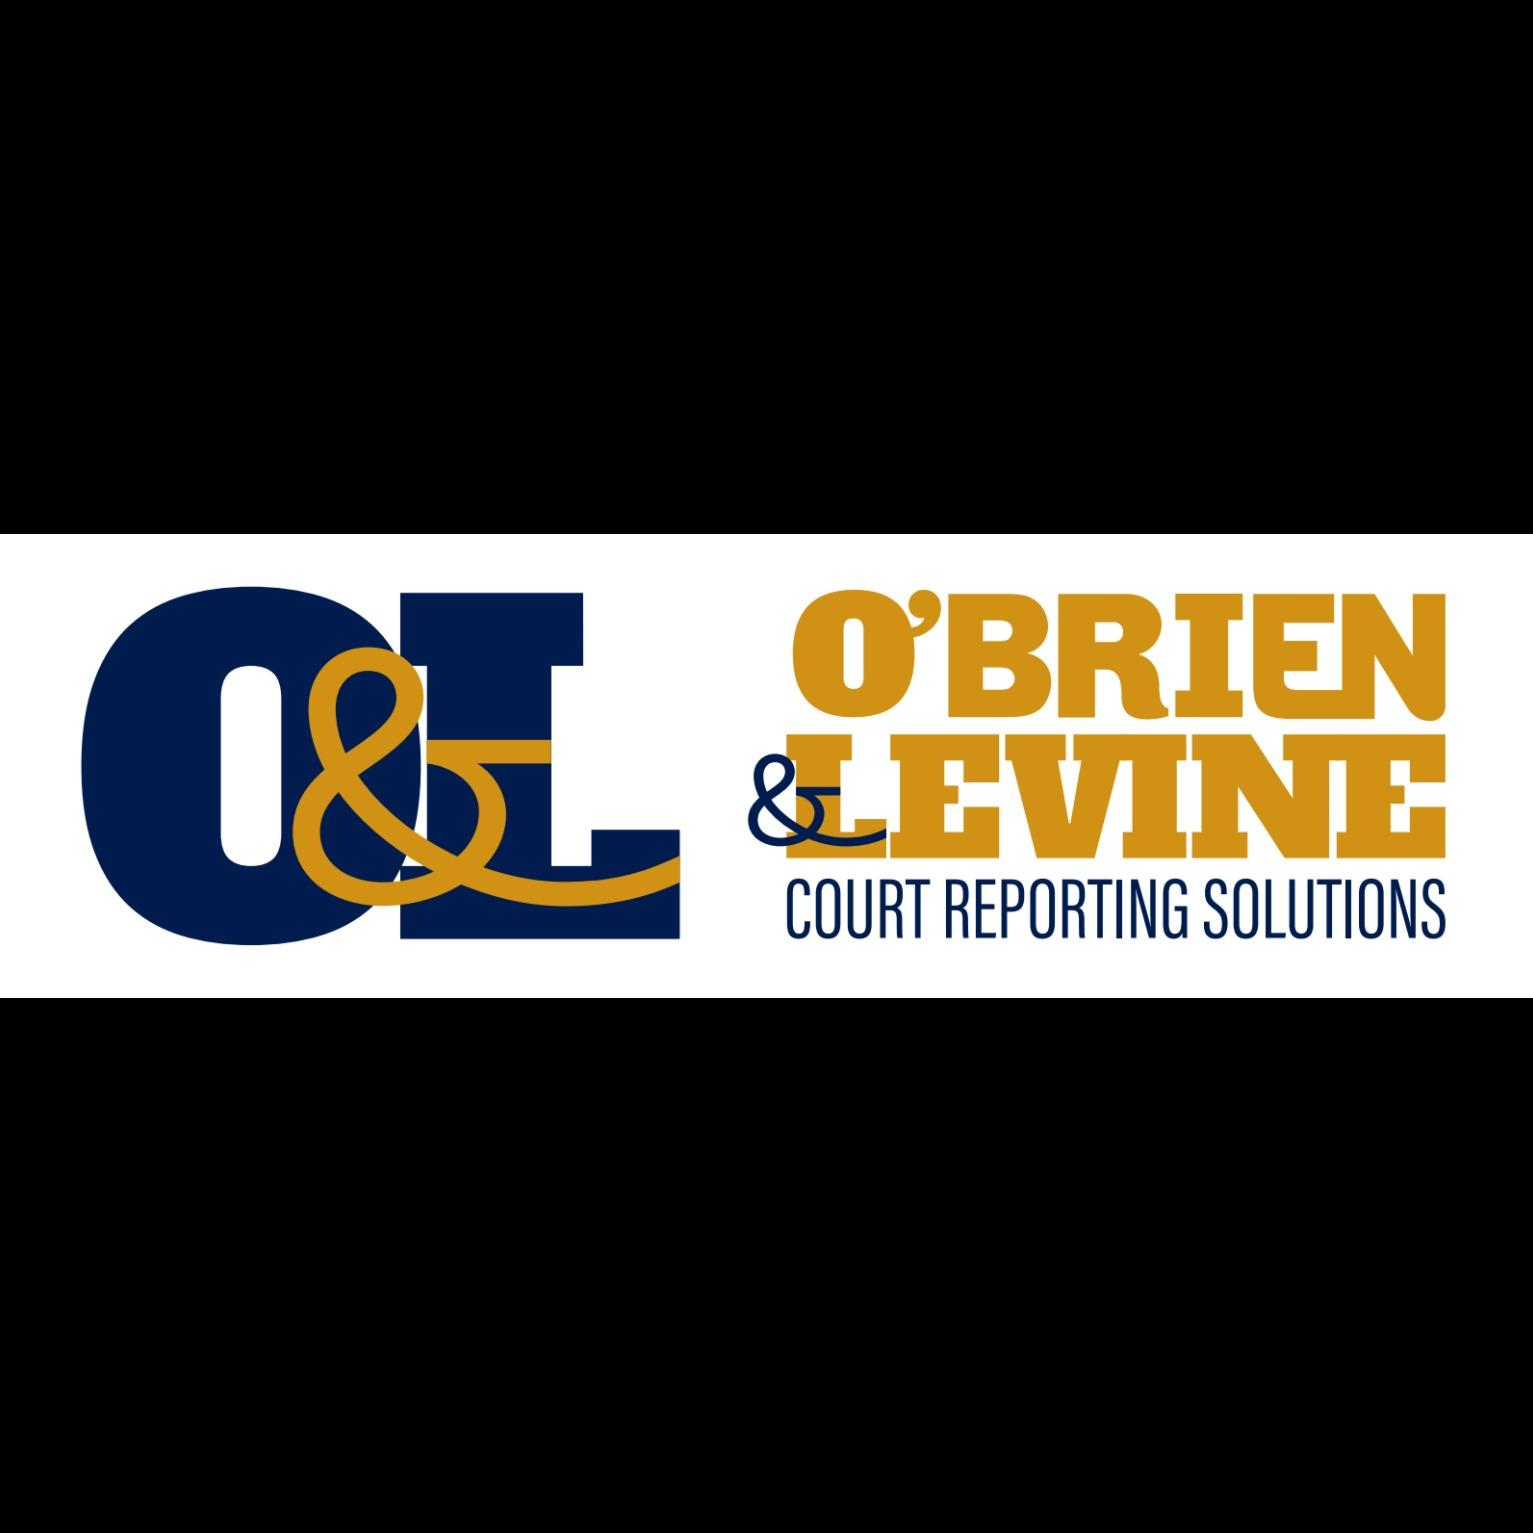 O'Brien & Levine Court Reporting Solutions